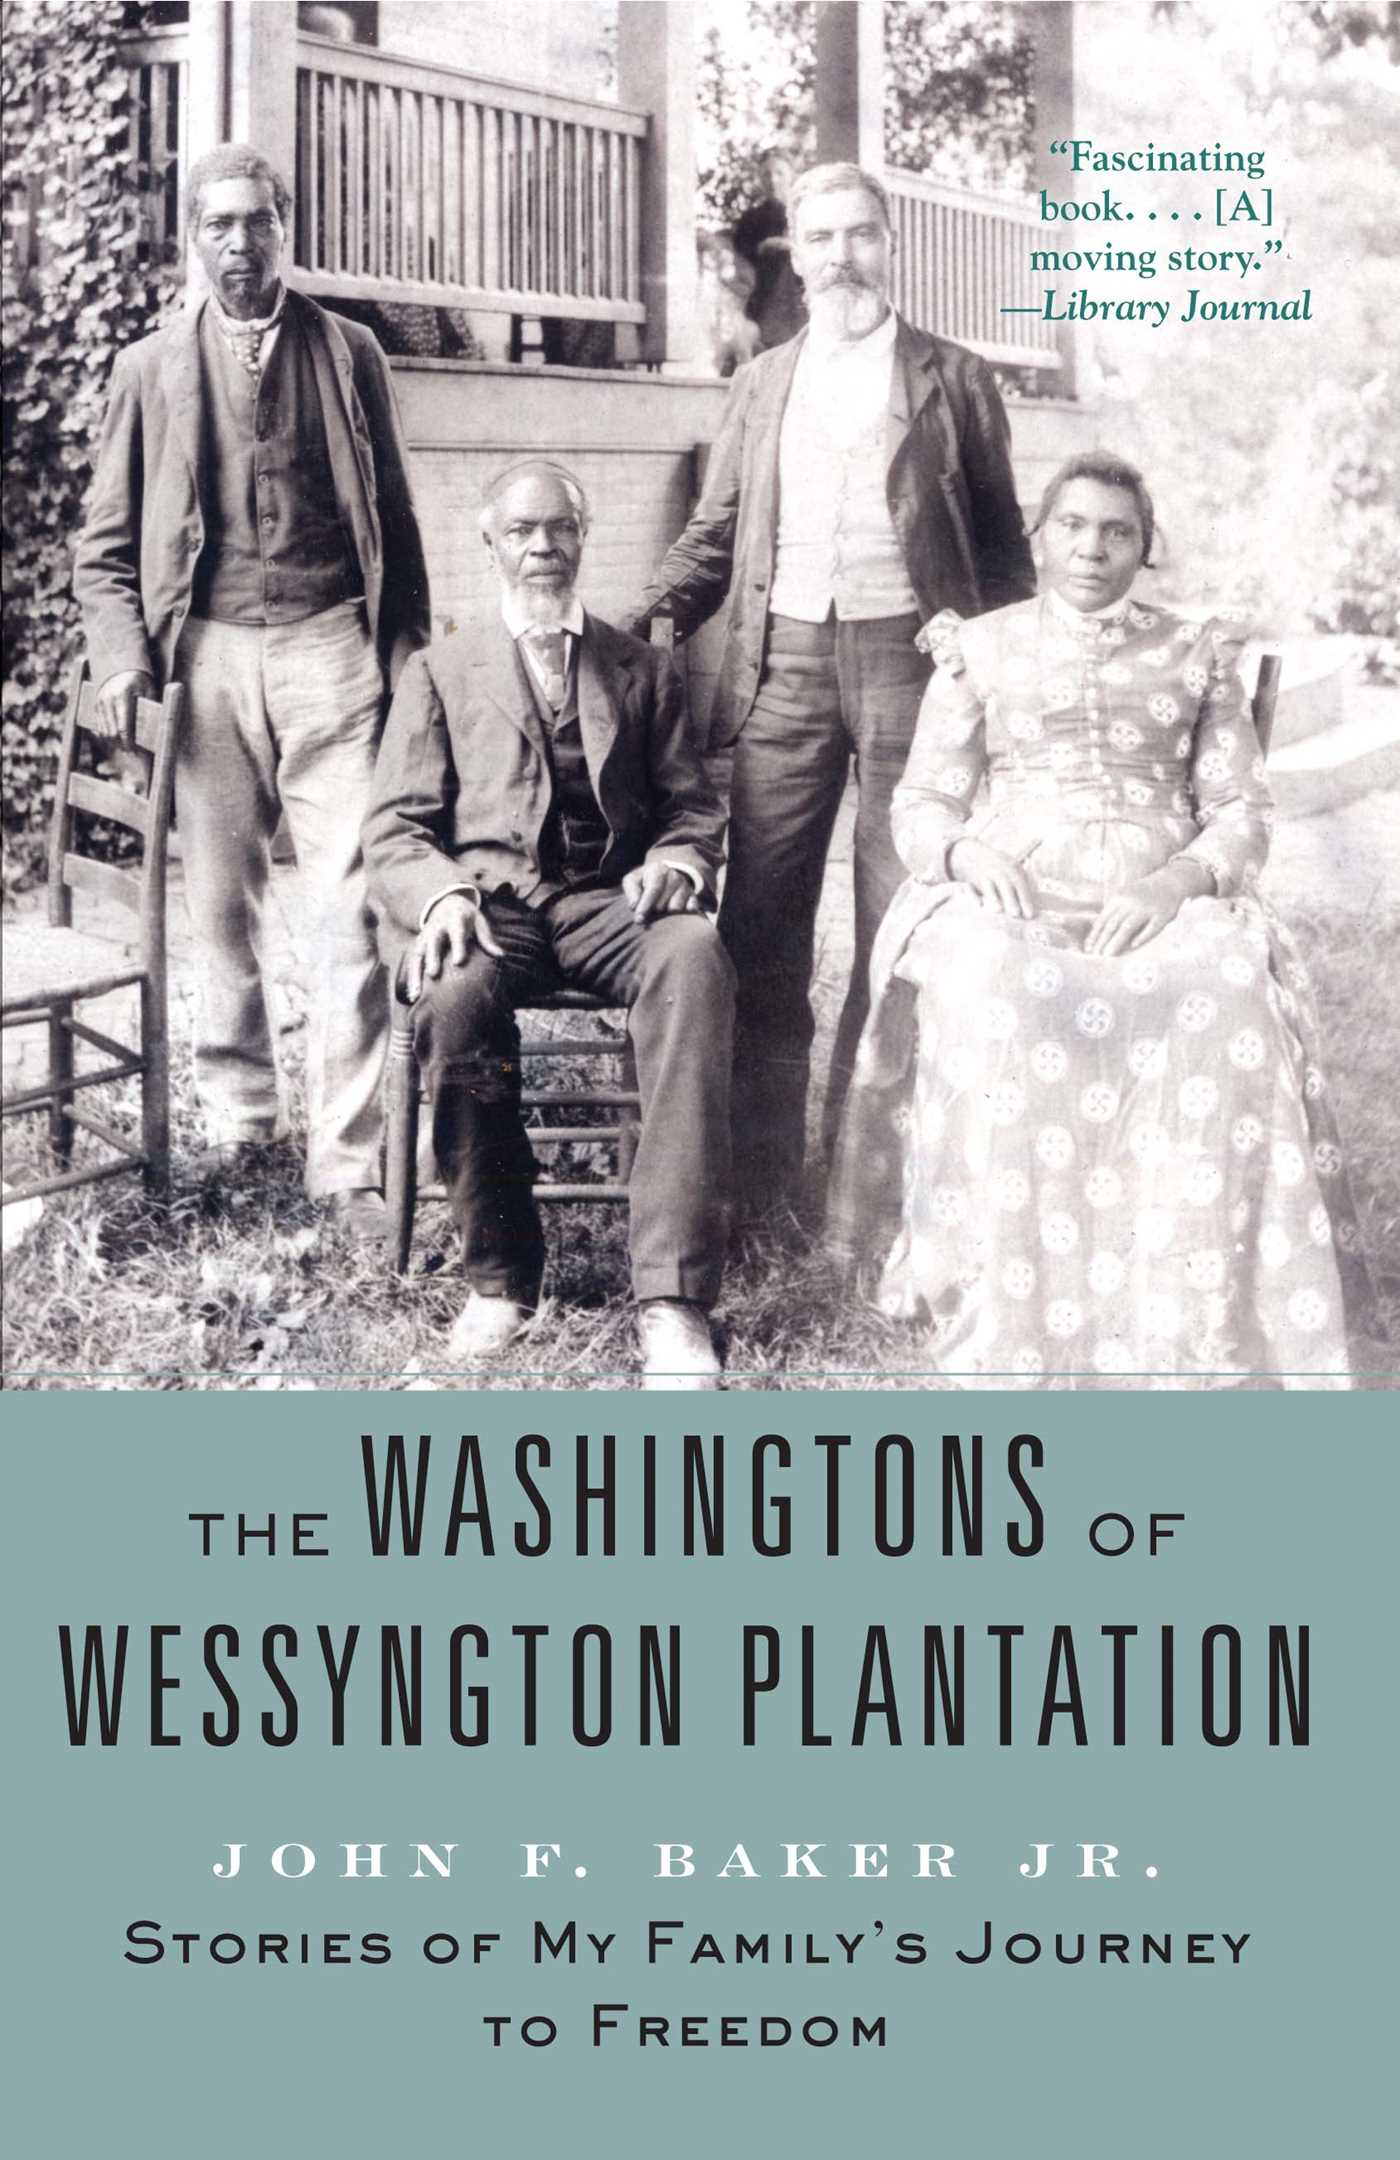 Washingtons of wessyngton plantation 9781416570332 hr